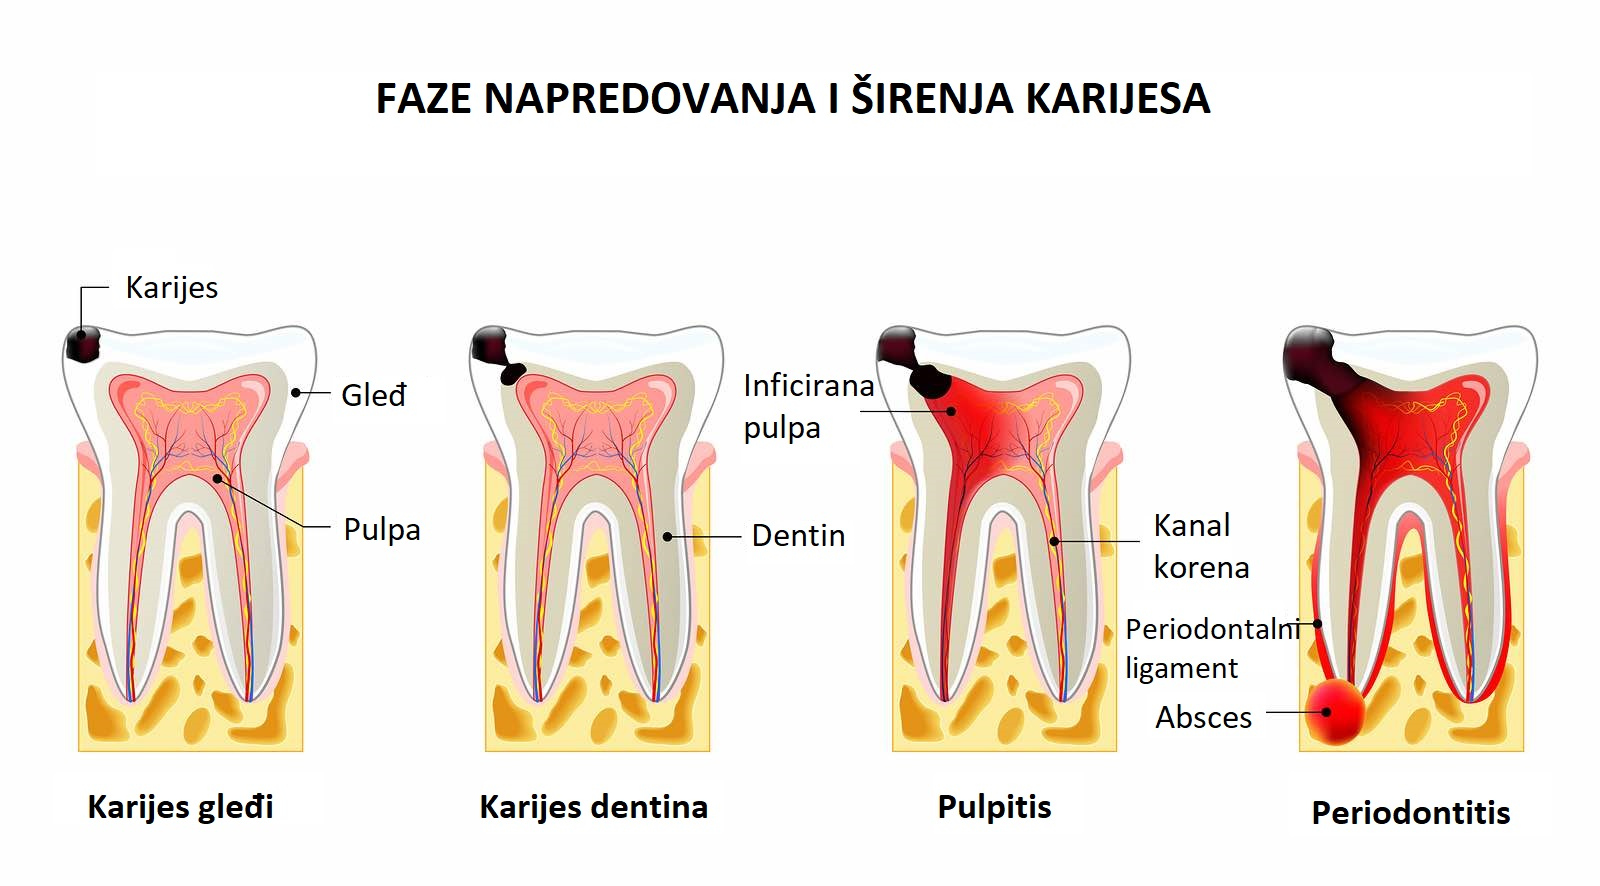 stages of caries development. Dental disease: caries pulpitis and periodontitis